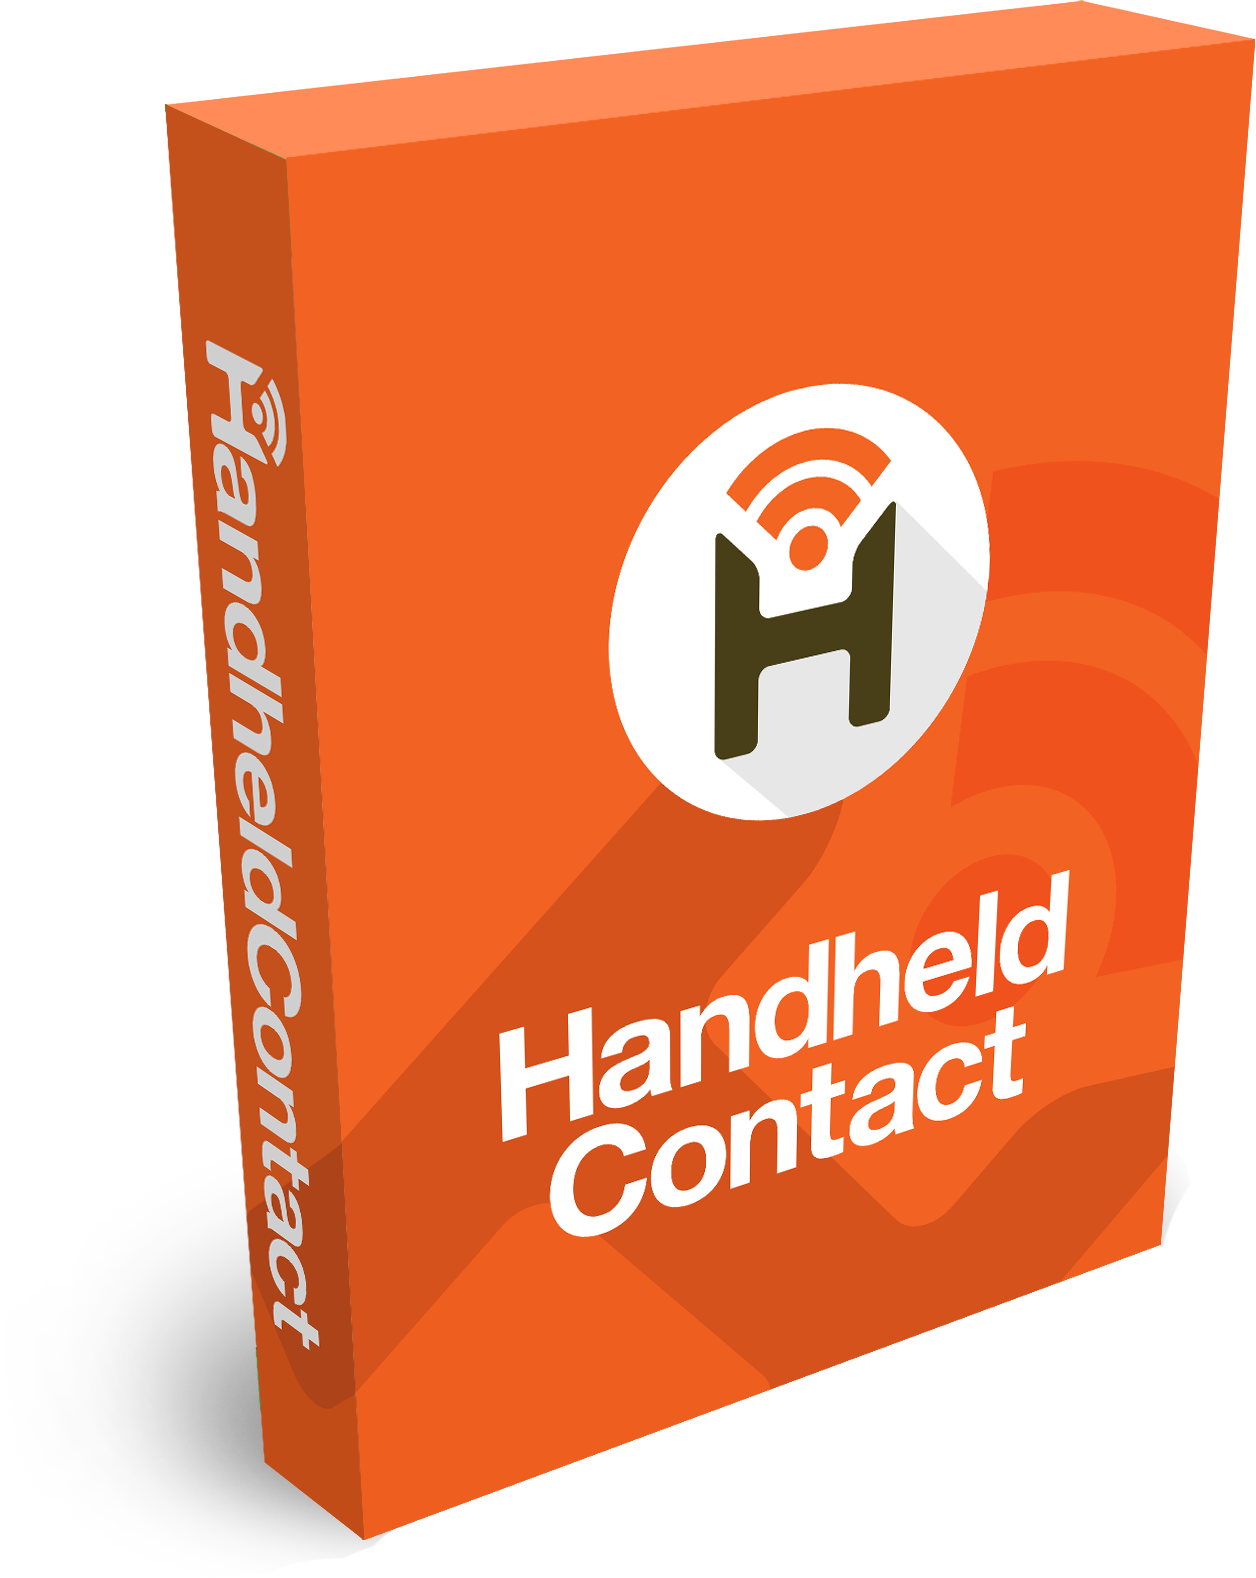 handheldcontact_product-box_transparent.png